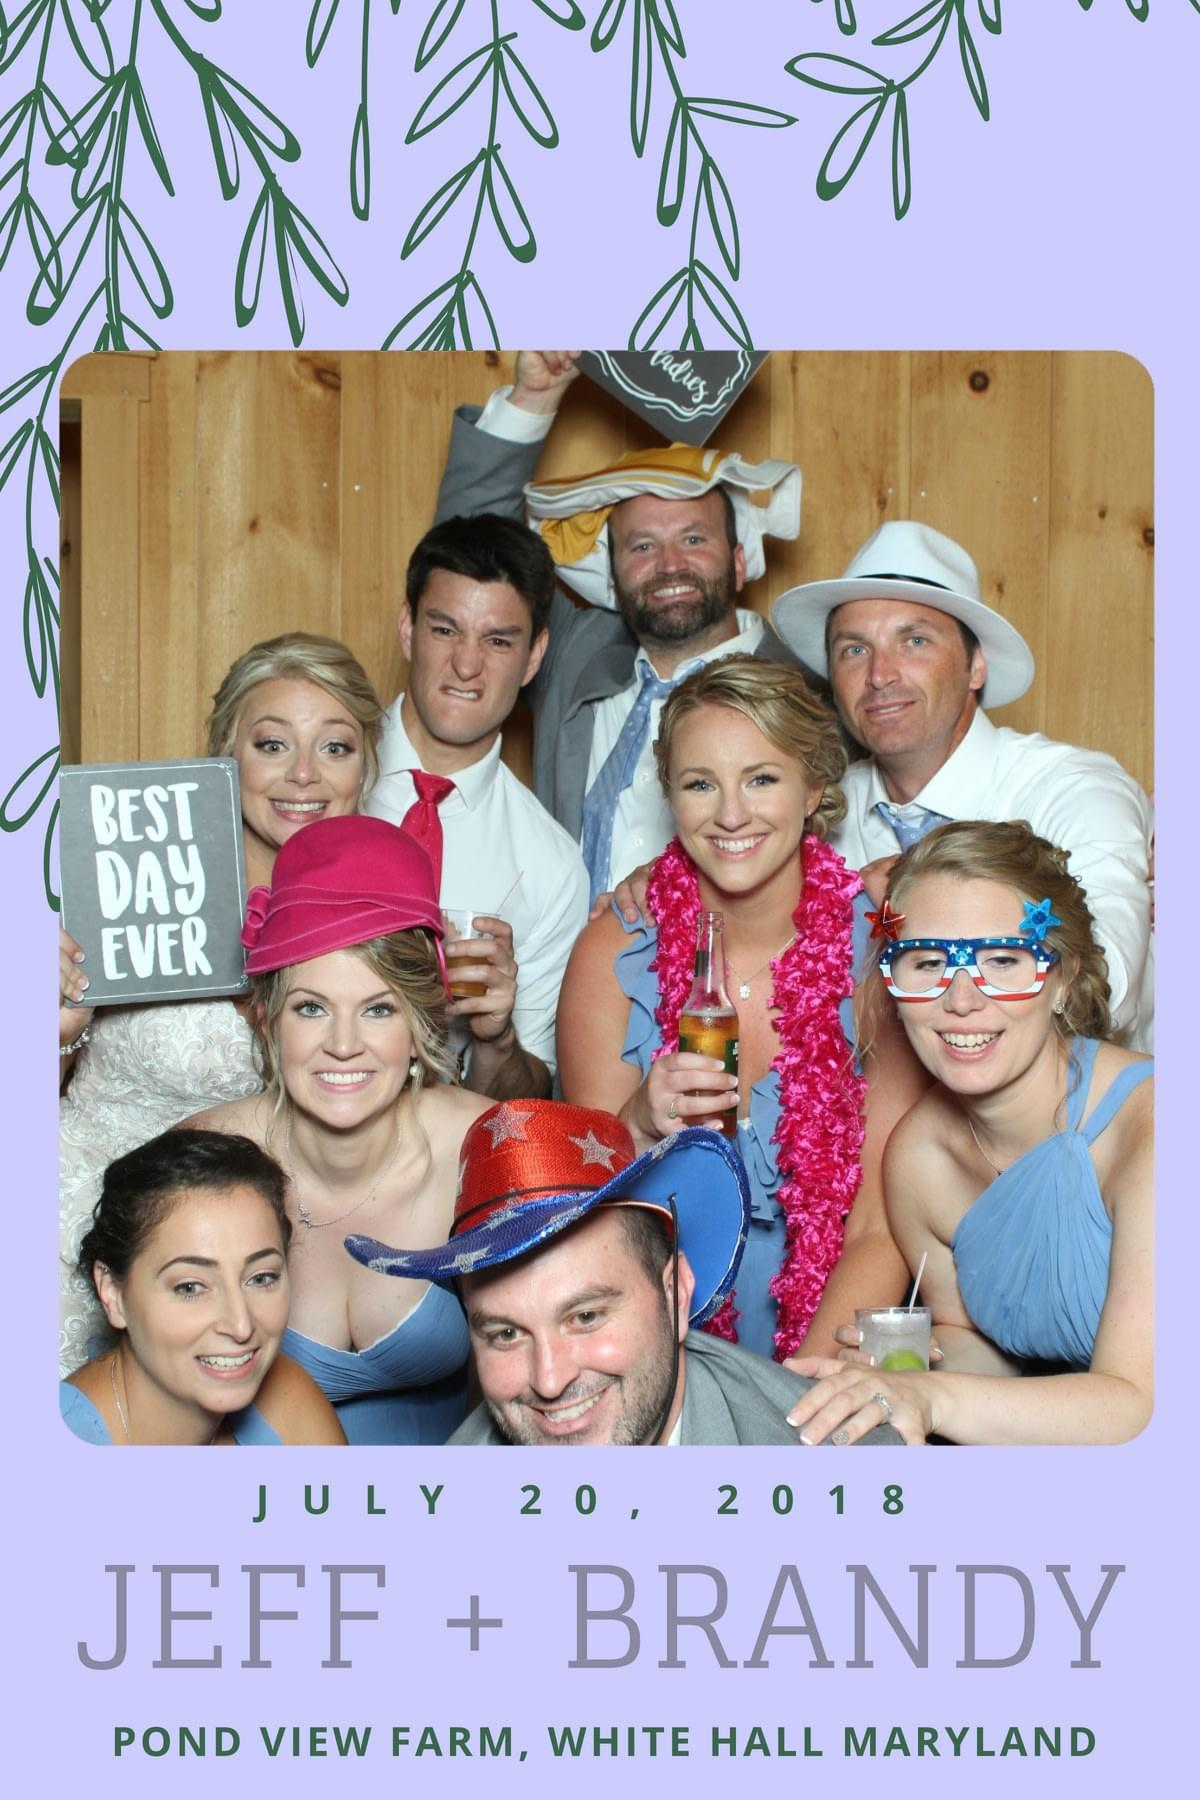 Wedding photo booth fun with the Magic Selfie Mirrror